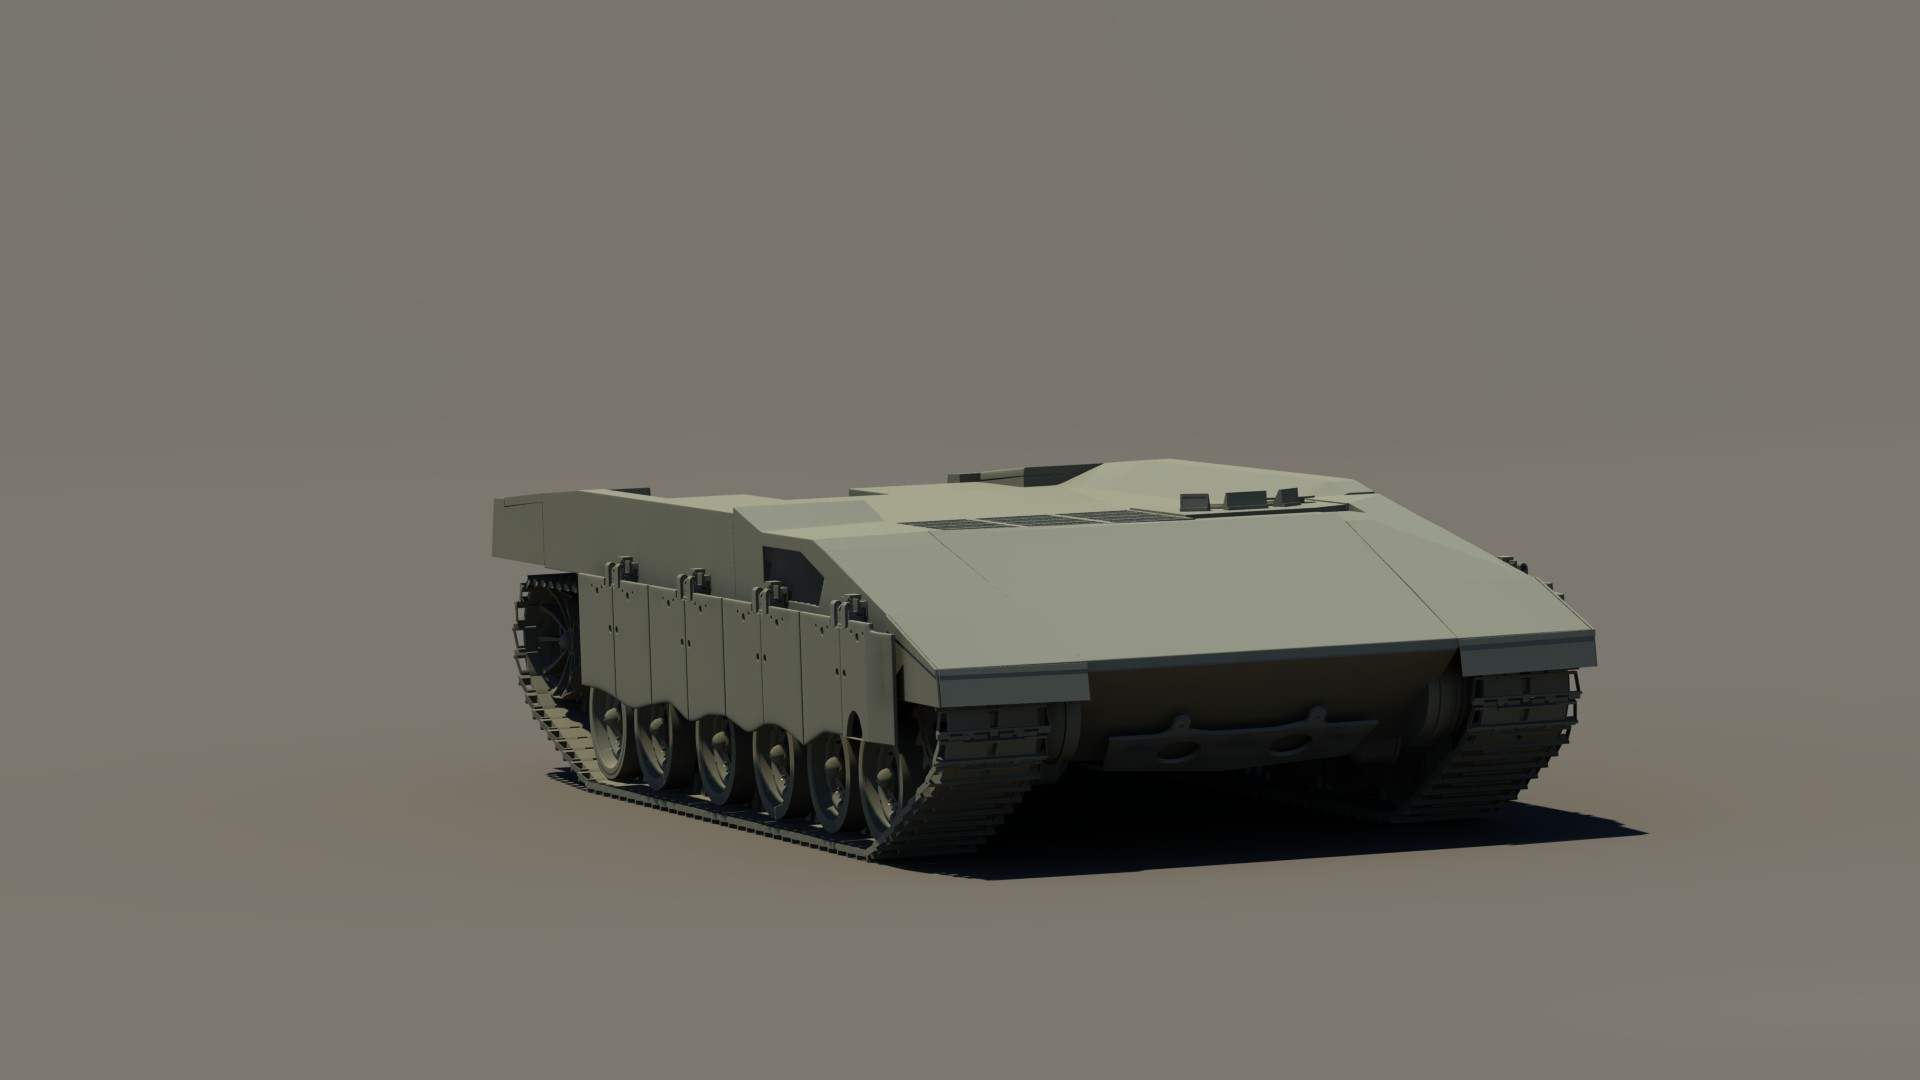 Week 2 WIP render. Added bulk hull with main silhouette and some finer detail.